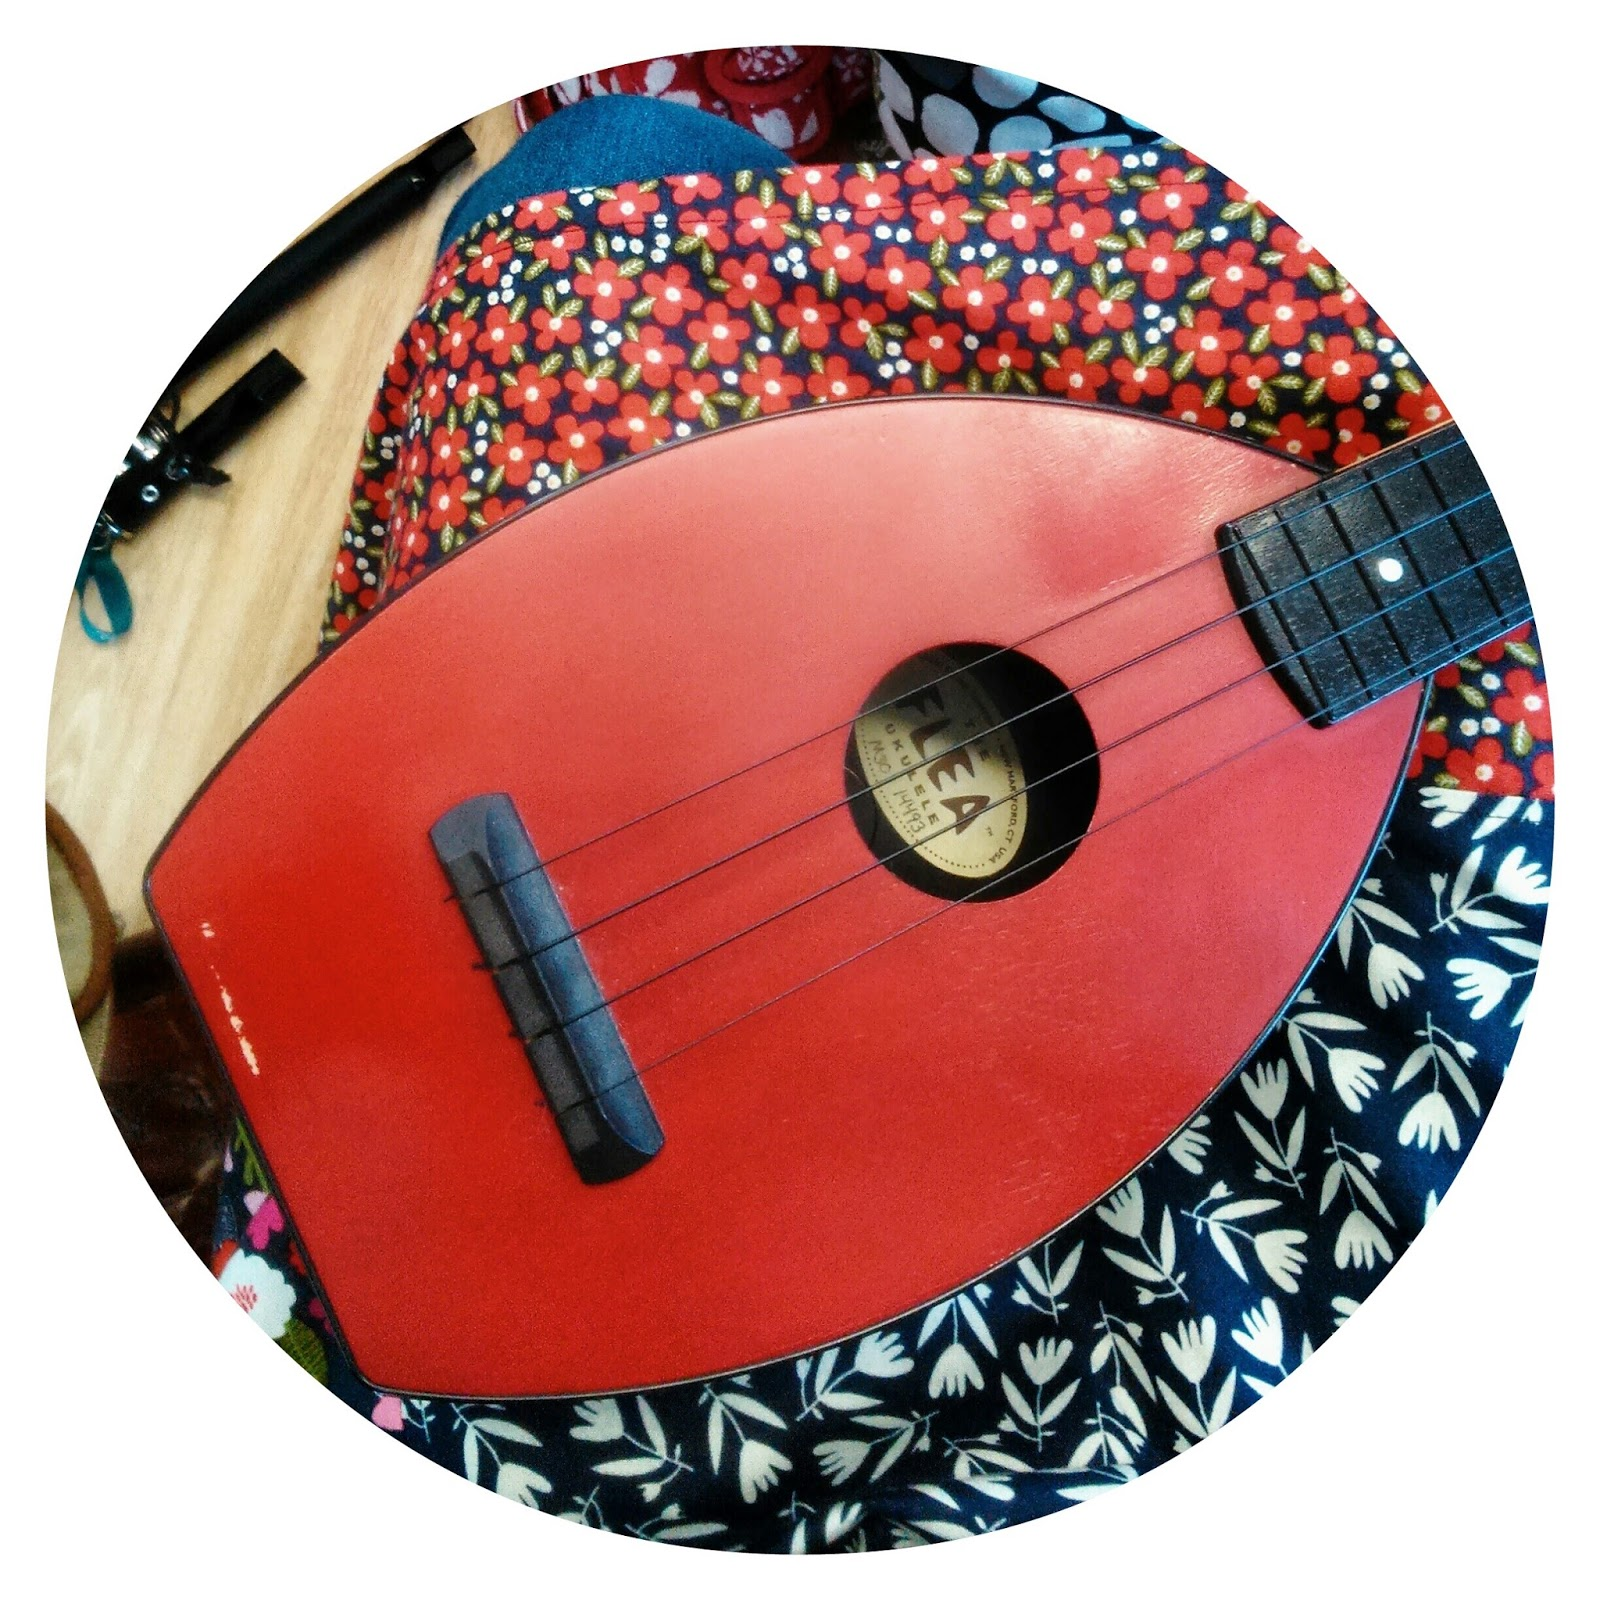 My ukulele at Wukulele February 2015